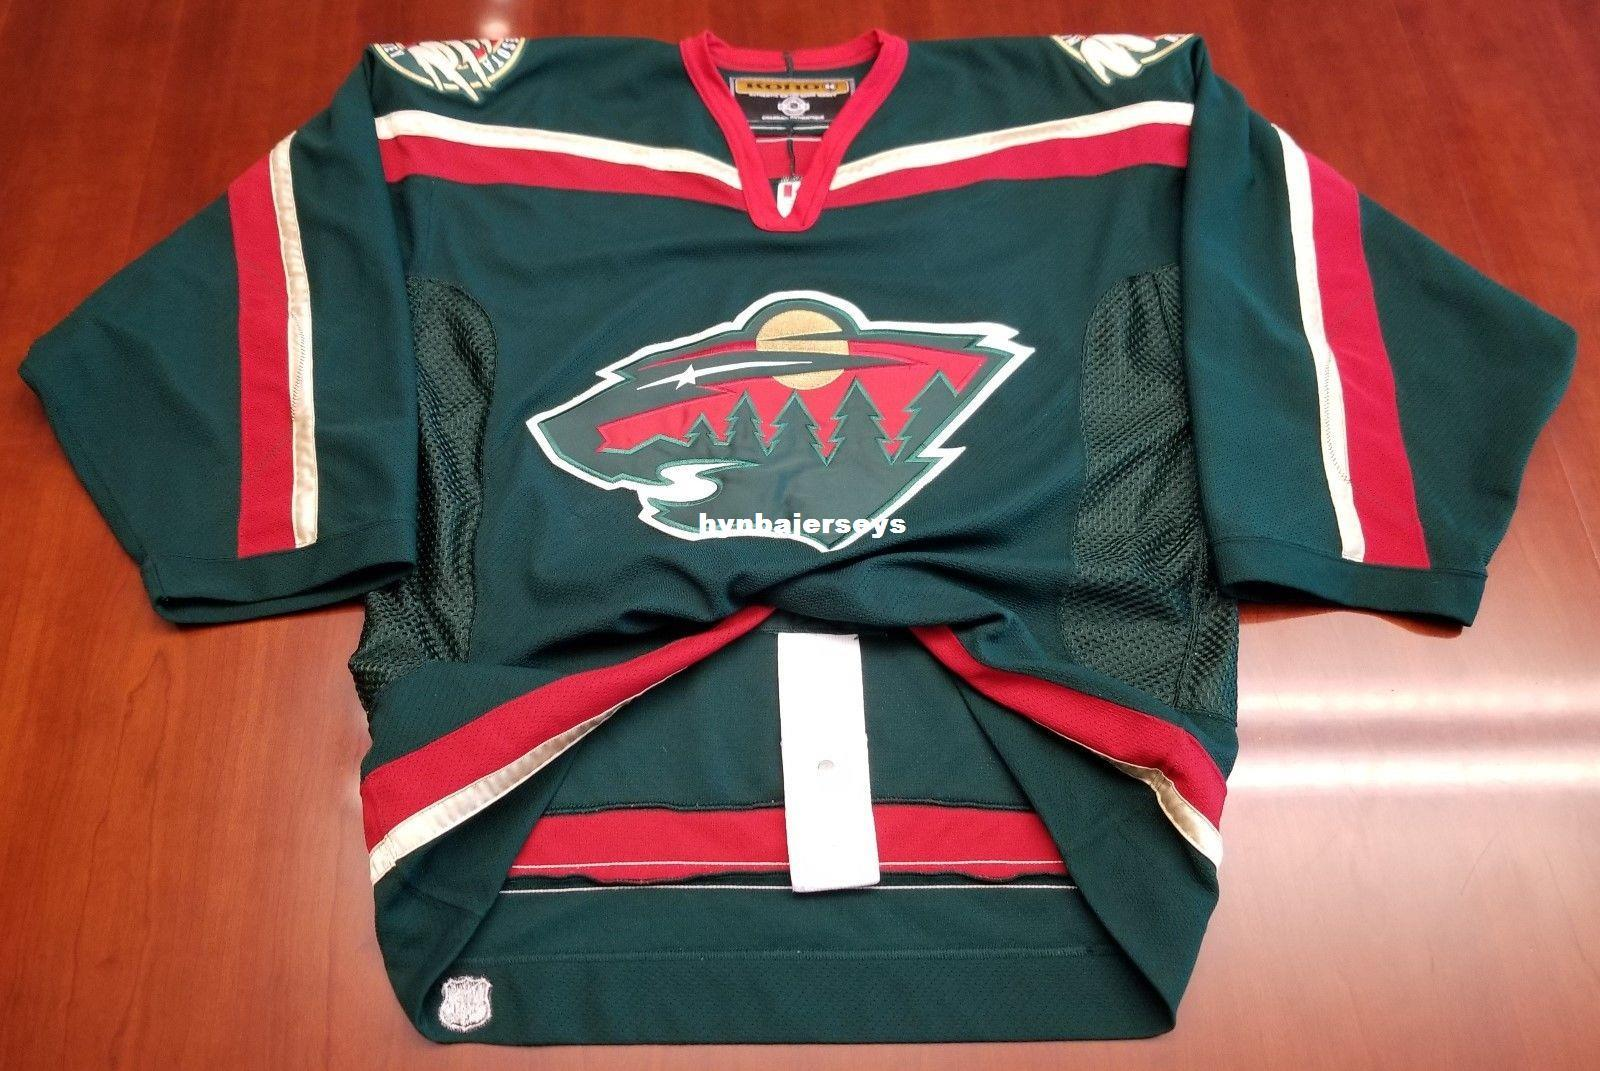 21a7a0f6c Custom Minnesota Wild Vintage Koho Cheap Center Ice Authentic Pro Hockey  Jersey Mens Retro Jerseys UK 2019 From Hynbajerseys